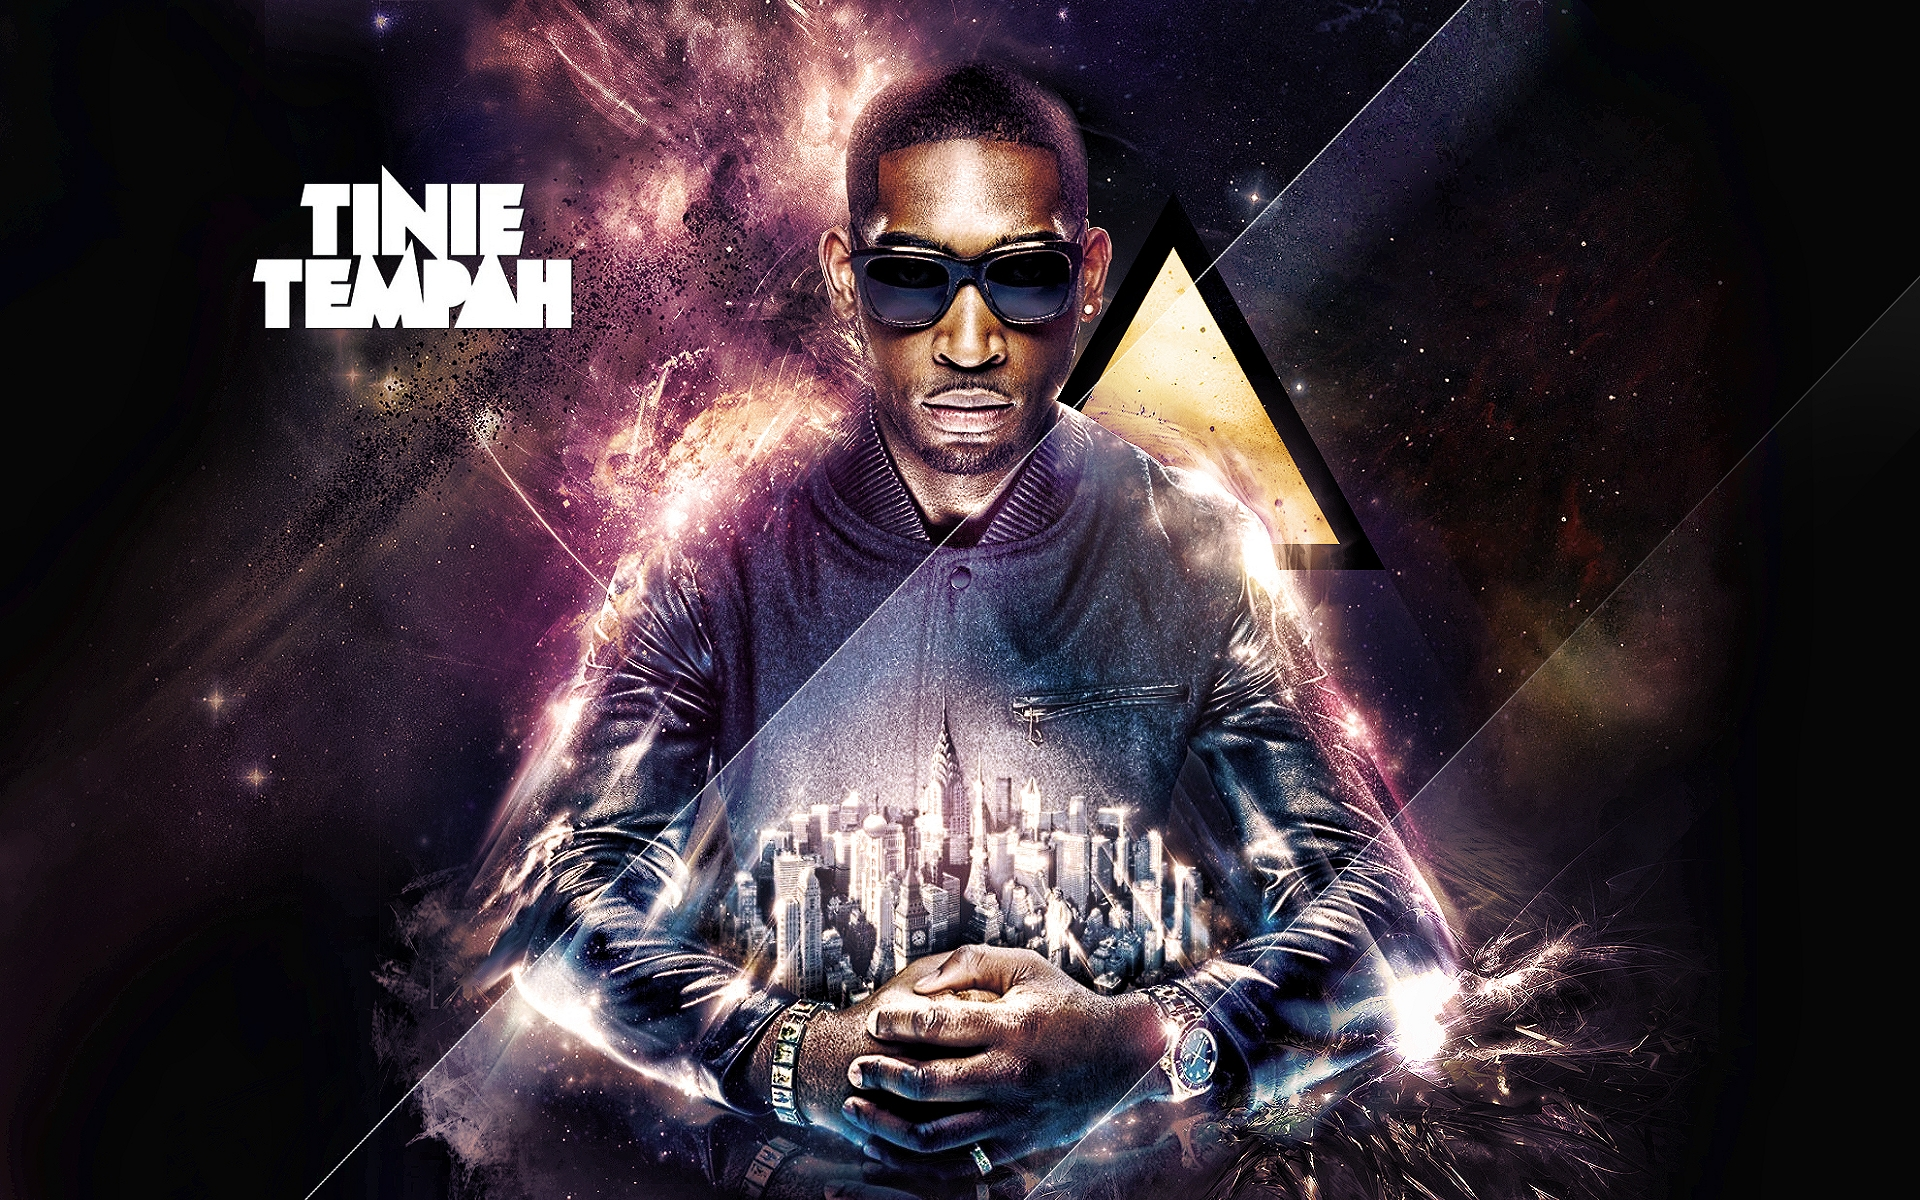 2 Tinie Tempah Hd Wallpapers Backgrounds Wallpaper Abyss